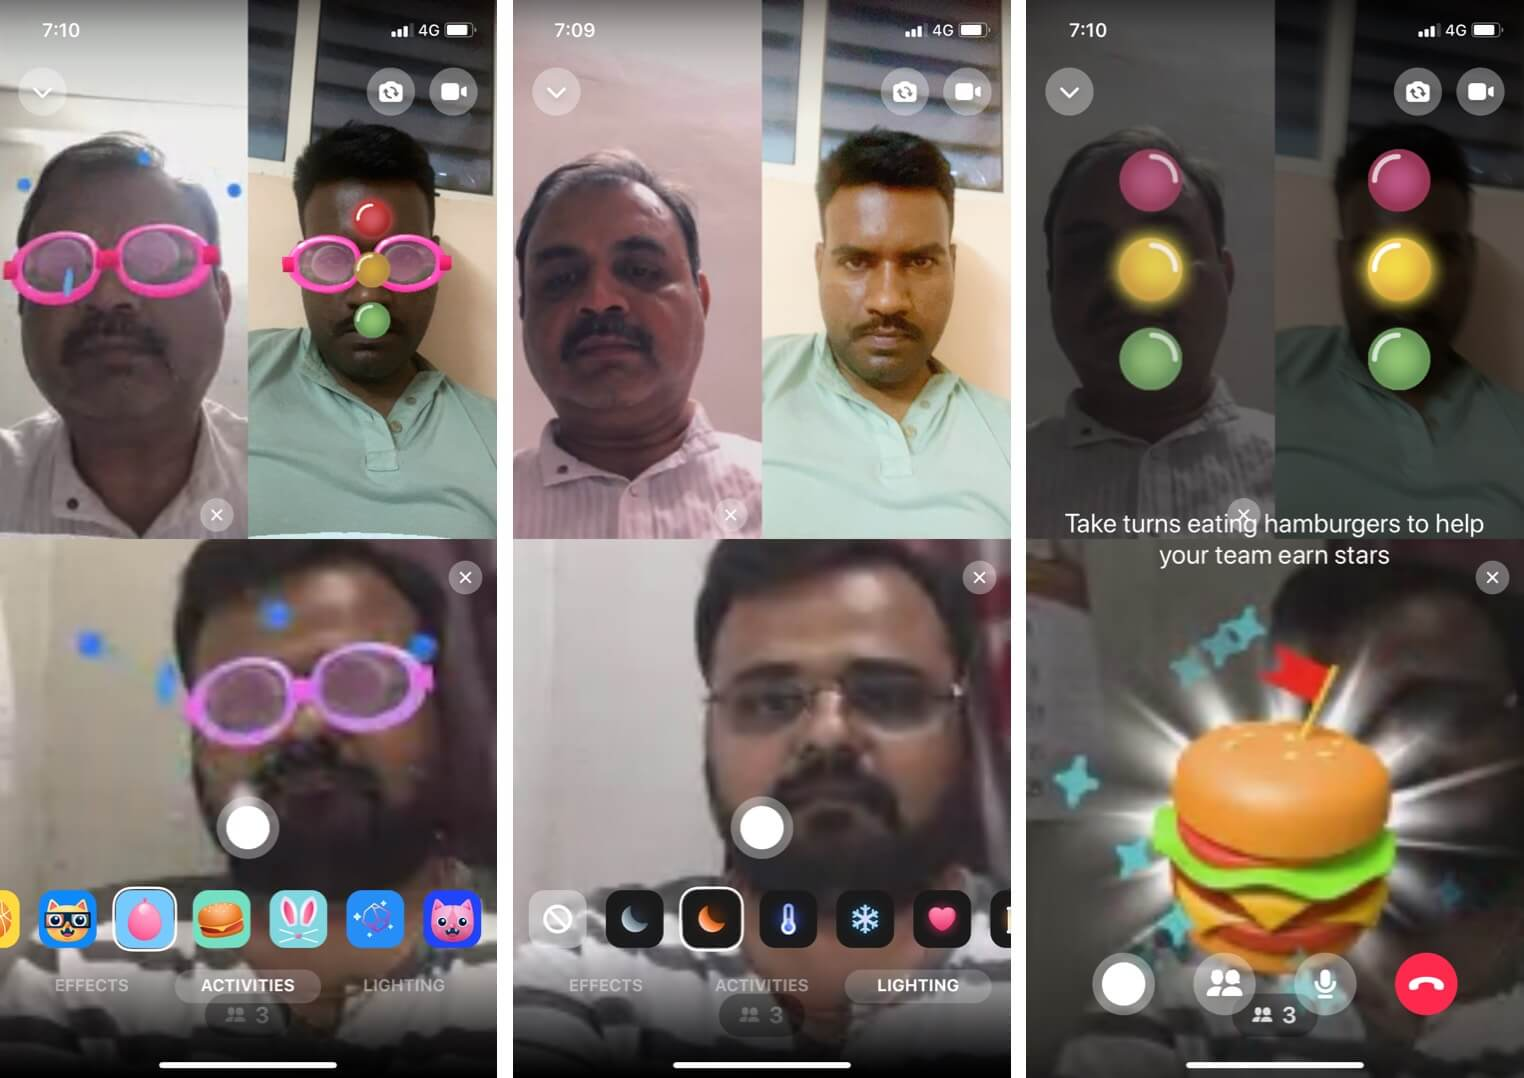 Use Various Effects During Video Call in Facebook Messenger Room on iPhone